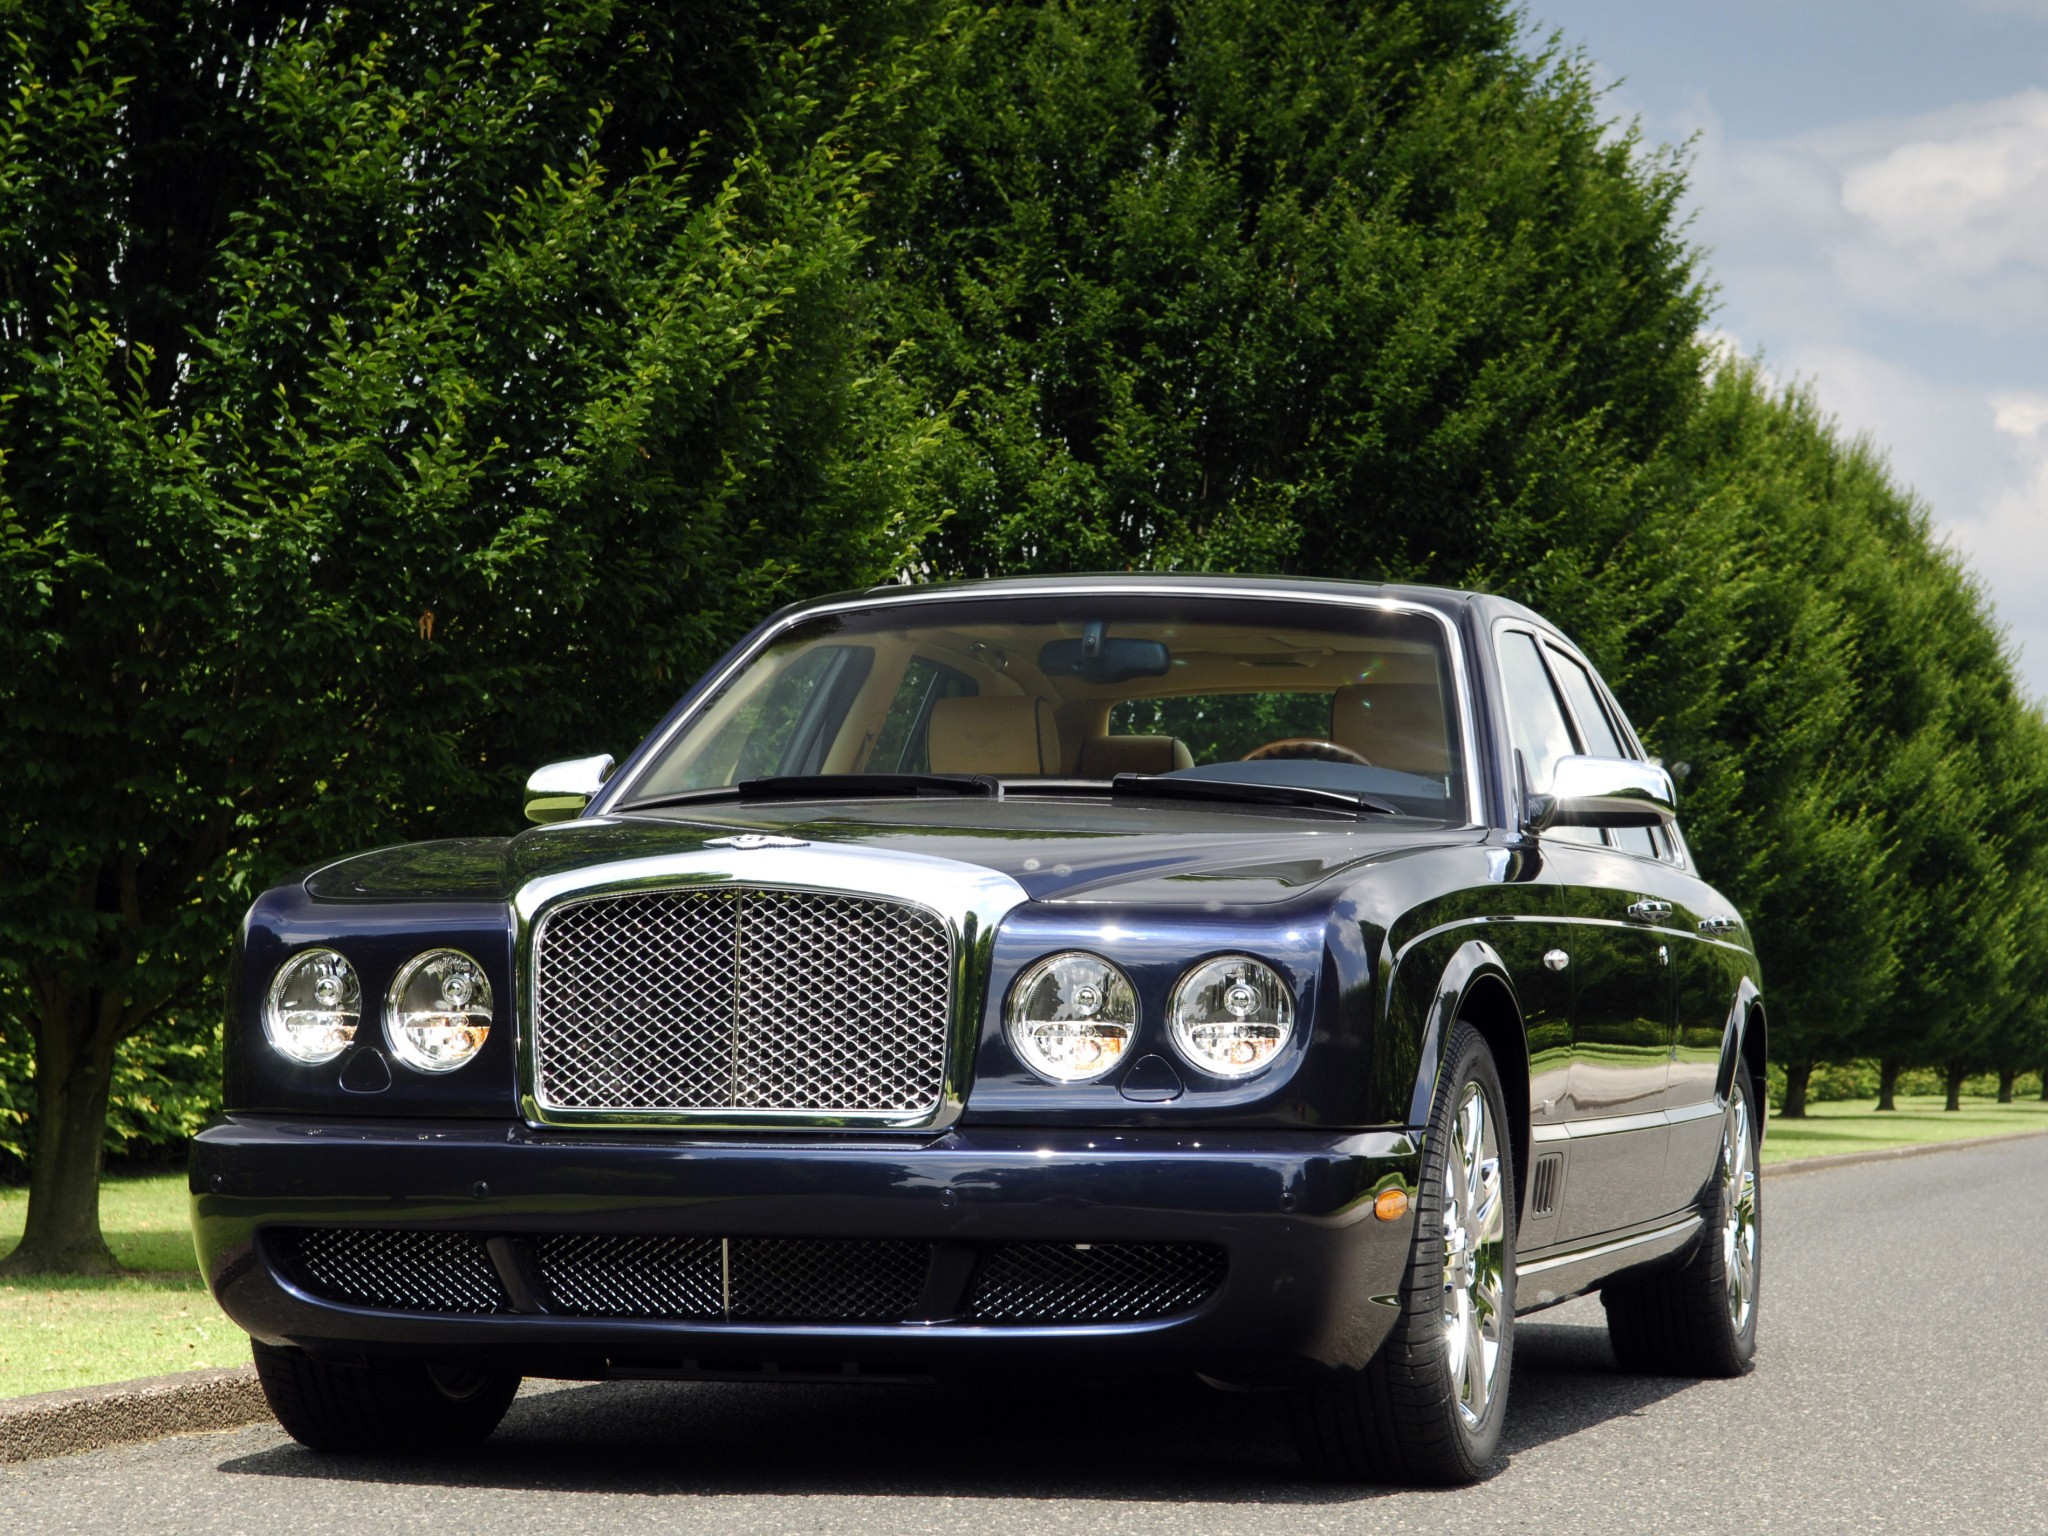 Bentley arnage blue train series specs 2005 2006 2007 2008 bentley arnage blue train series 2005 2009 vanachro Images